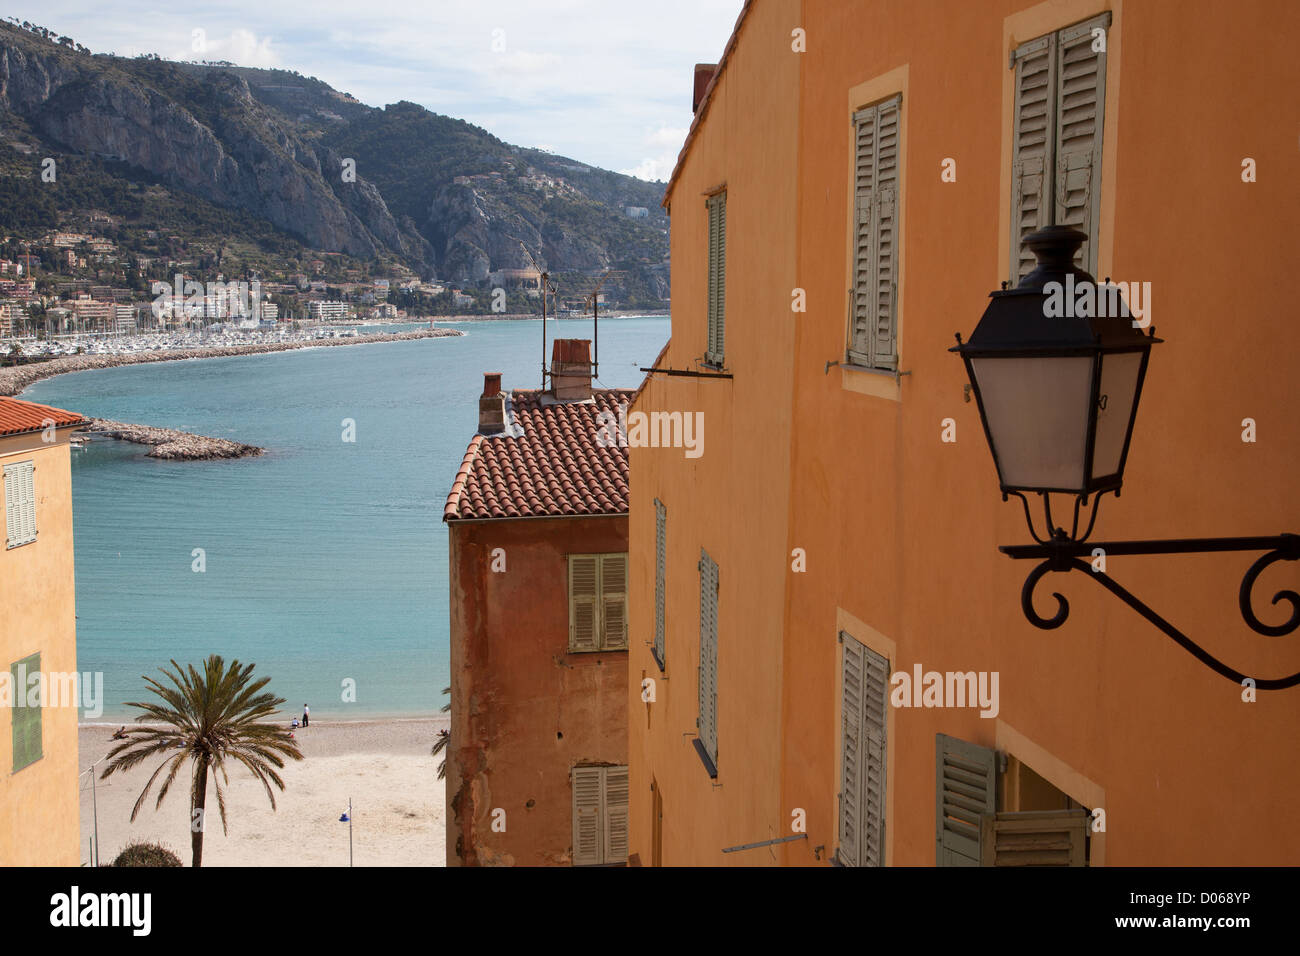 COLOURFUL HOUSES THE BONAPARTE QUAY AND OLD TOWN OF MENTON ALPES-MARITIMES (06) FRANCE - Stock Image